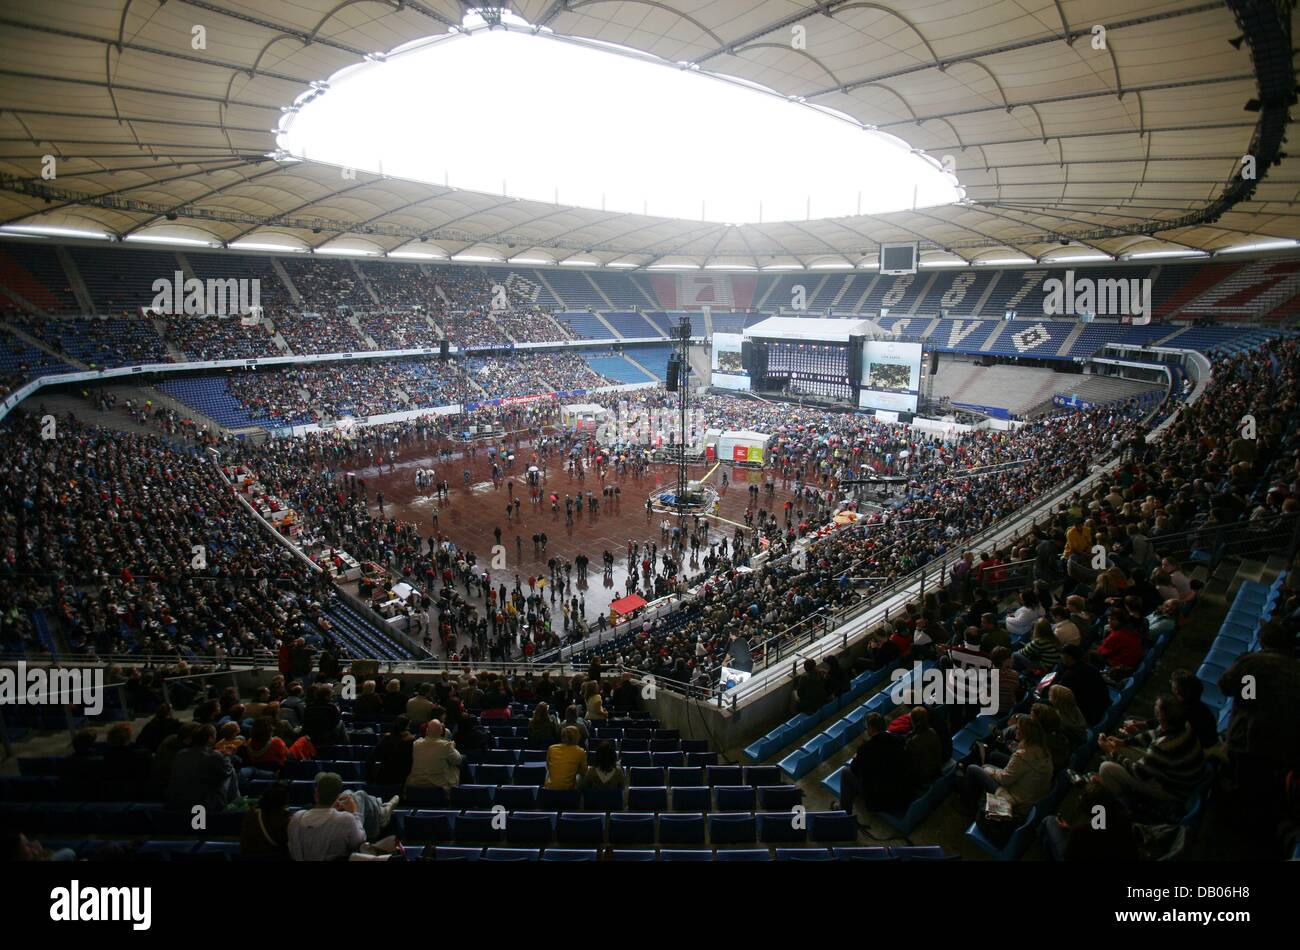 The Picture Shows Audience And Stage During Live Earth Concert At Volkspark Stadium In Hamburg Germany 07 July 2007 105 Pop Rockstars Want To